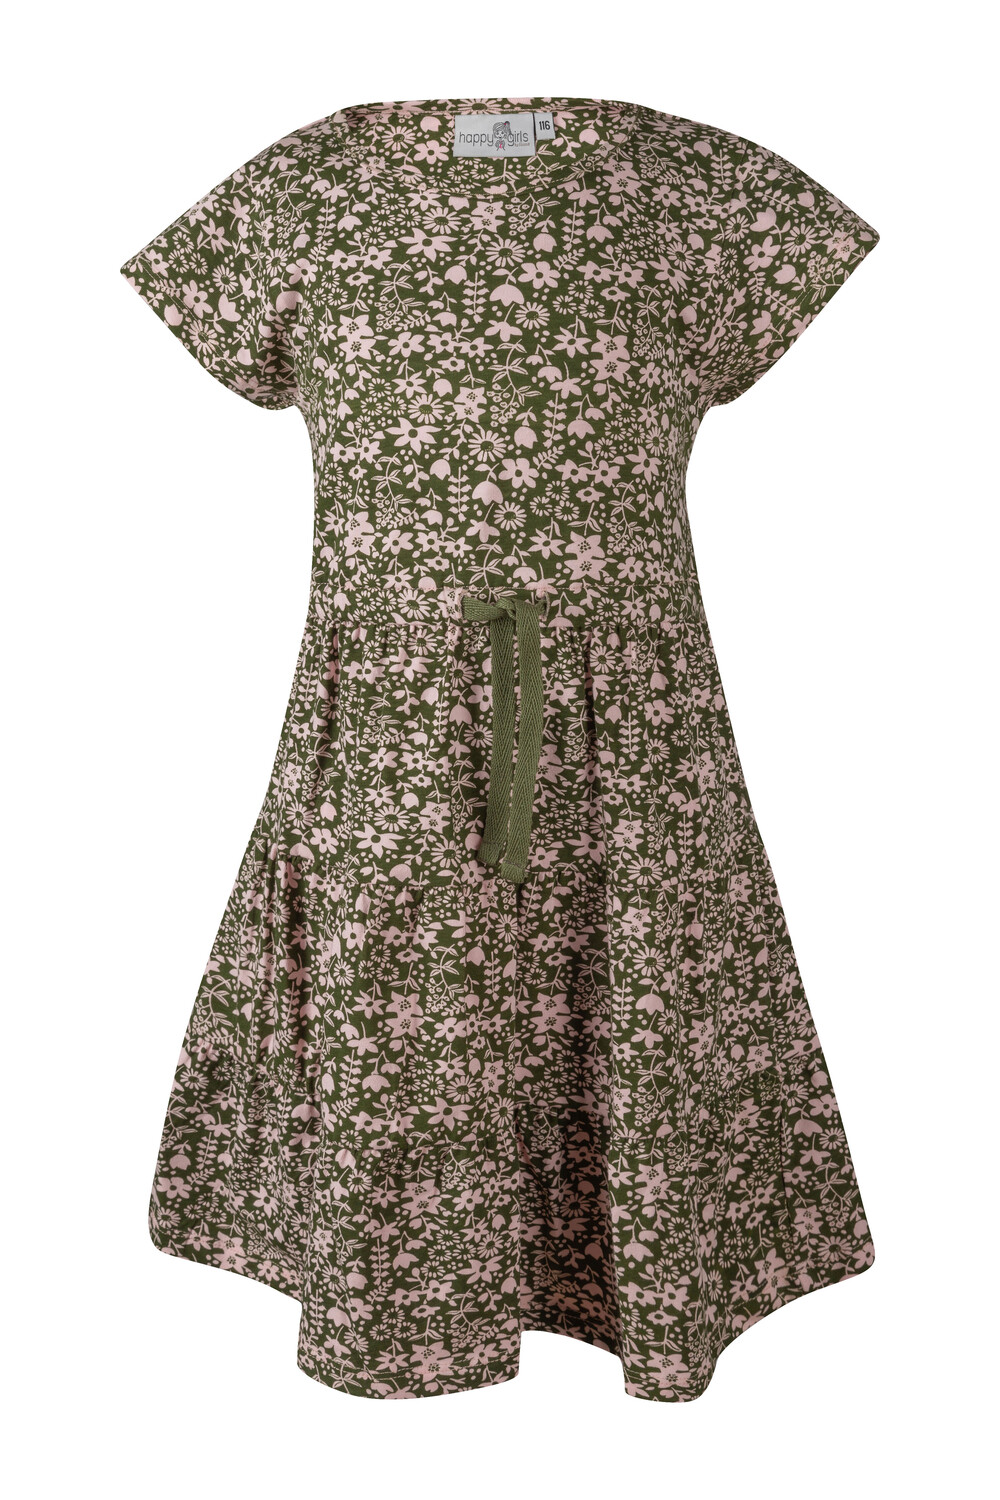 Kleid rosa Blümchen 116 khaki happy girls by Eisend